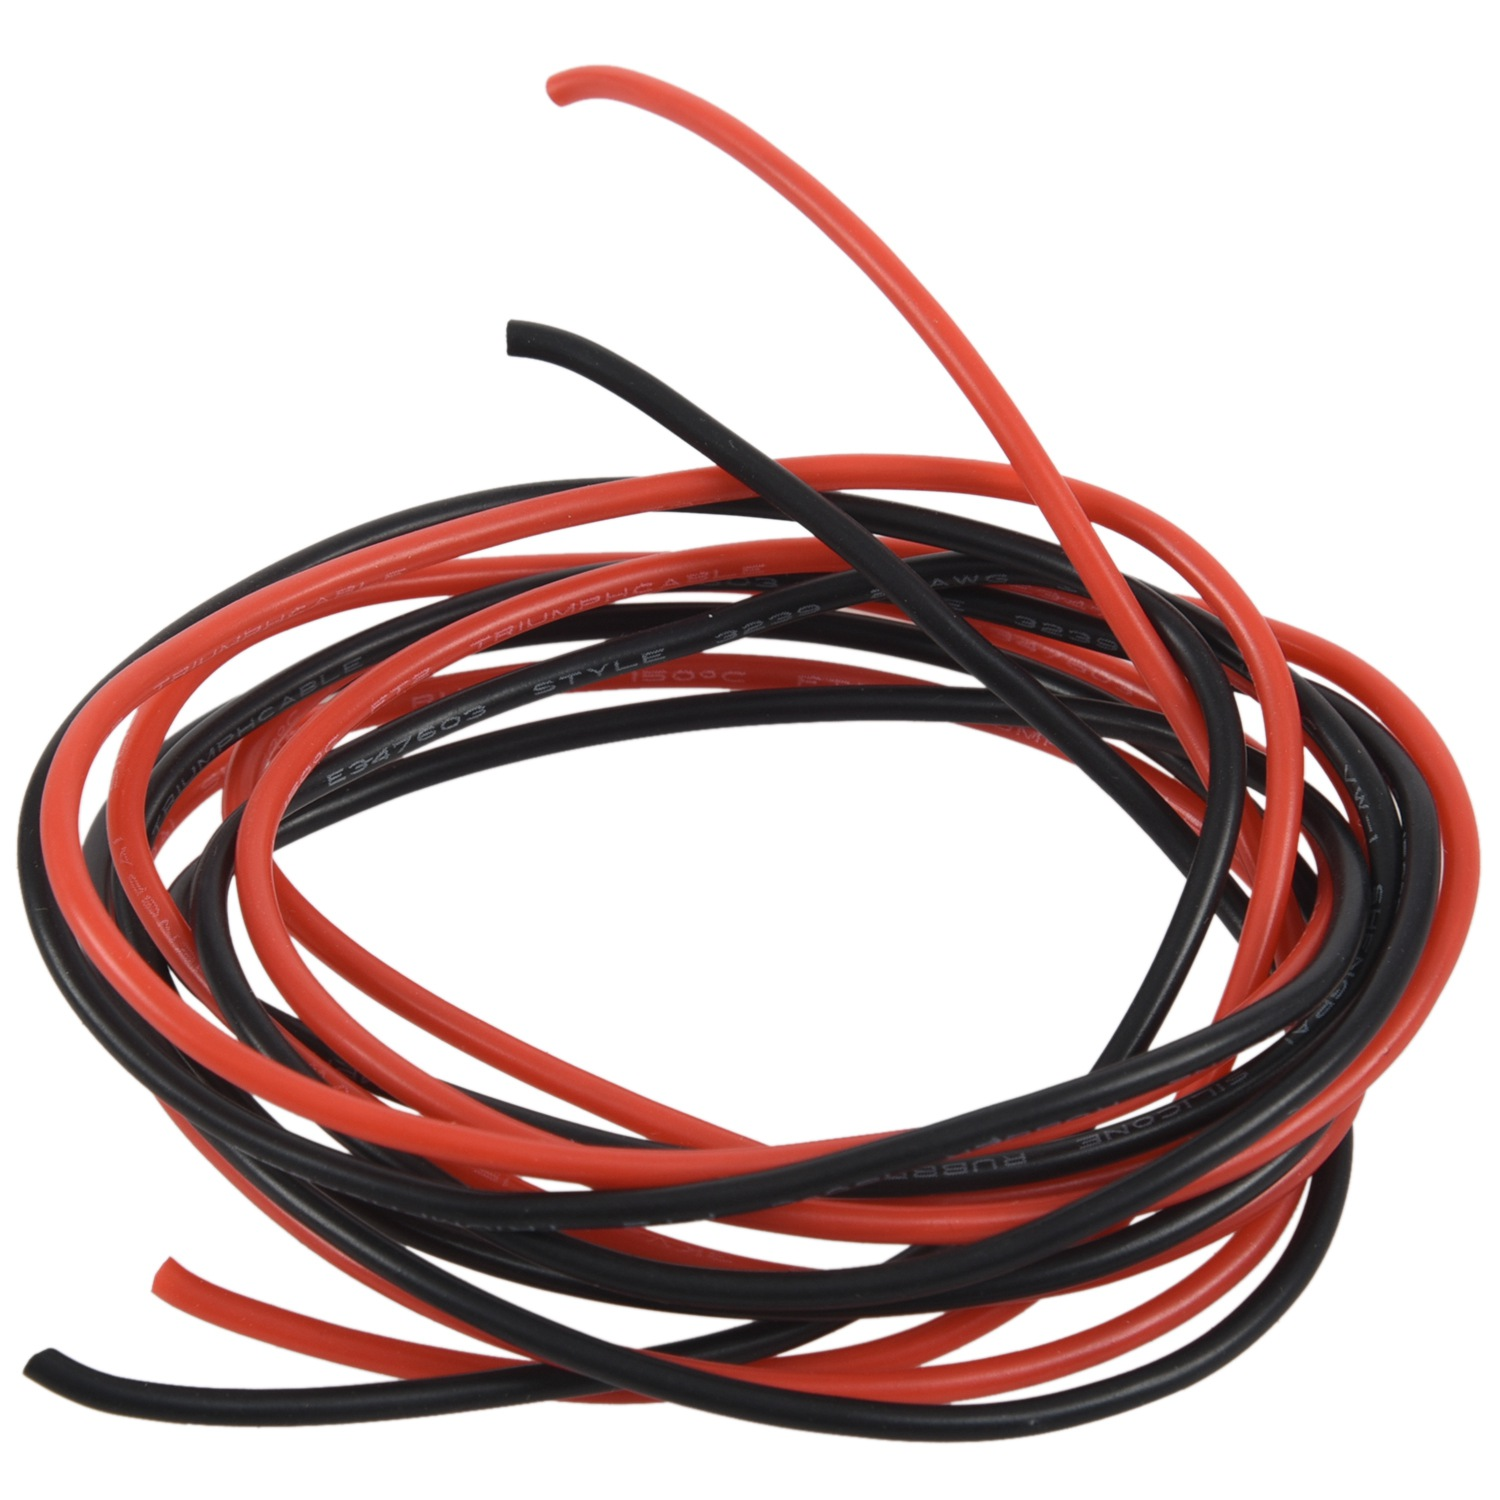 2x 1M Long Red+Black <font><b>Silicone</b></font> Cable <font><b>Wire</b></font>, <font><b>10AWG</b></font> image